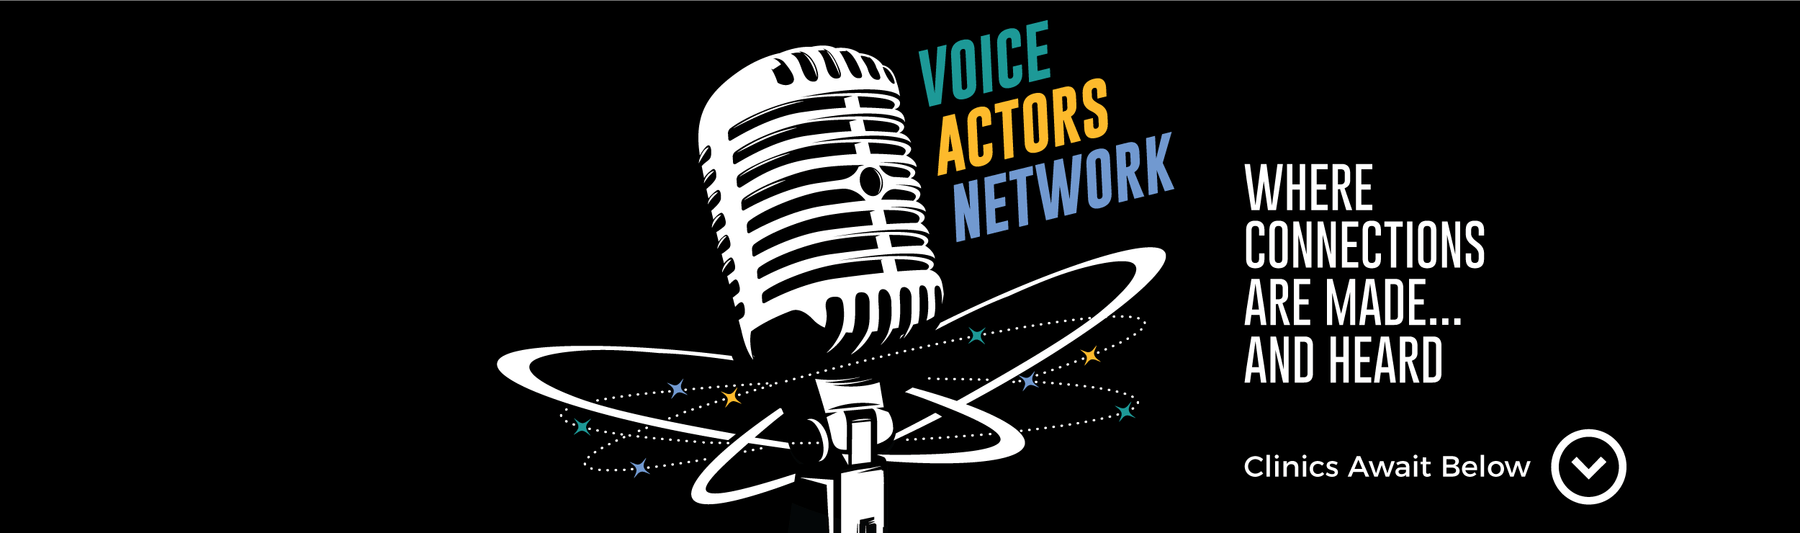 Voice Actors Network